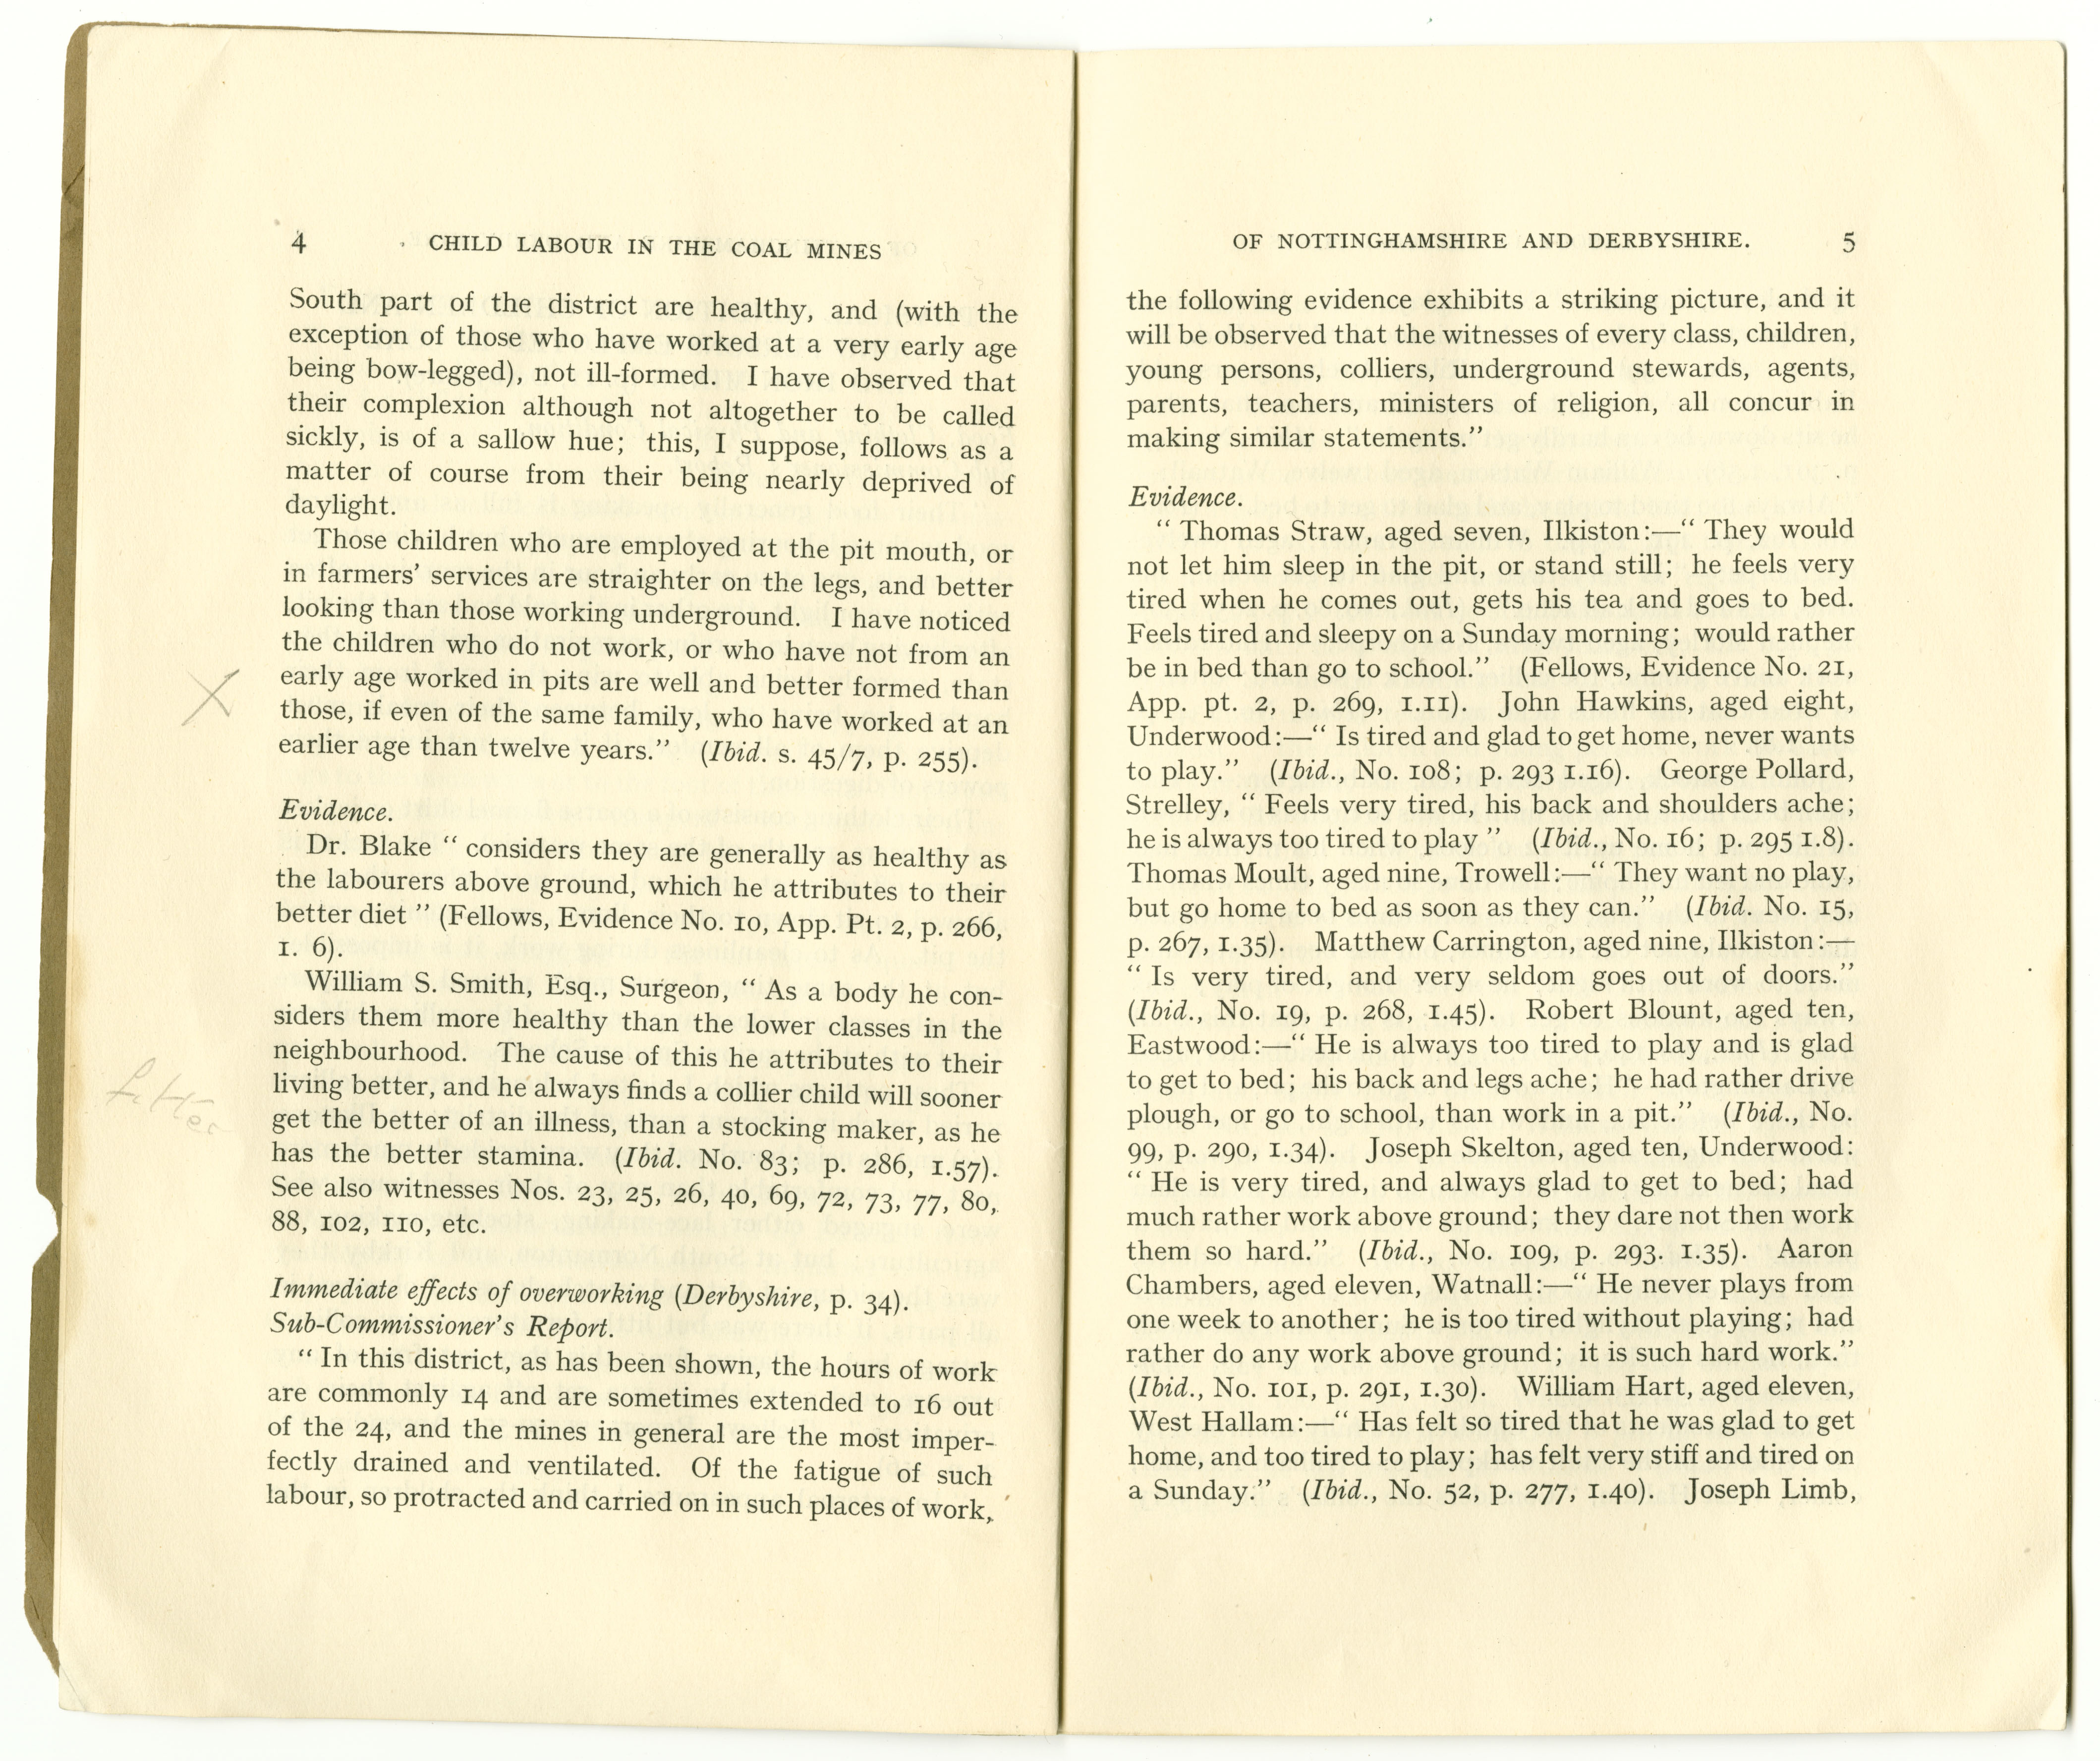 """Pages from """"Child labour in the coal mines of Nottinghamshire and Derbyshire in the nineteenth century: extracts from the Reports of Commissioners, 1842"""" by Herbert Green, 1936. (Ref Pamphlet Em. O46 GRE)"""